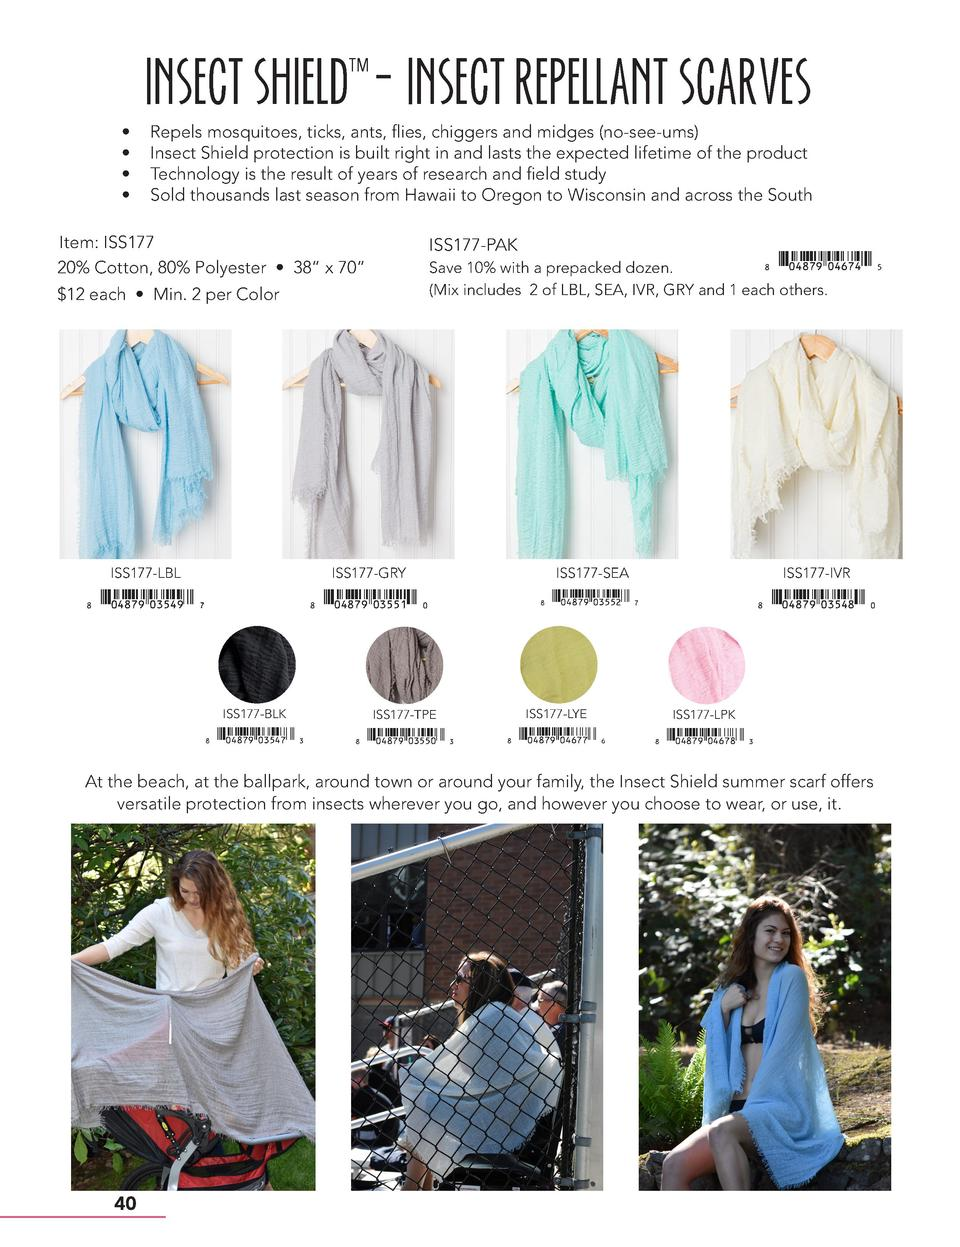 TM  INSECT SHIELD - INSECT REPELLANT SCARVES                  Repels mosquitoes, ticks, ants, flies, chiggers and midges  ...